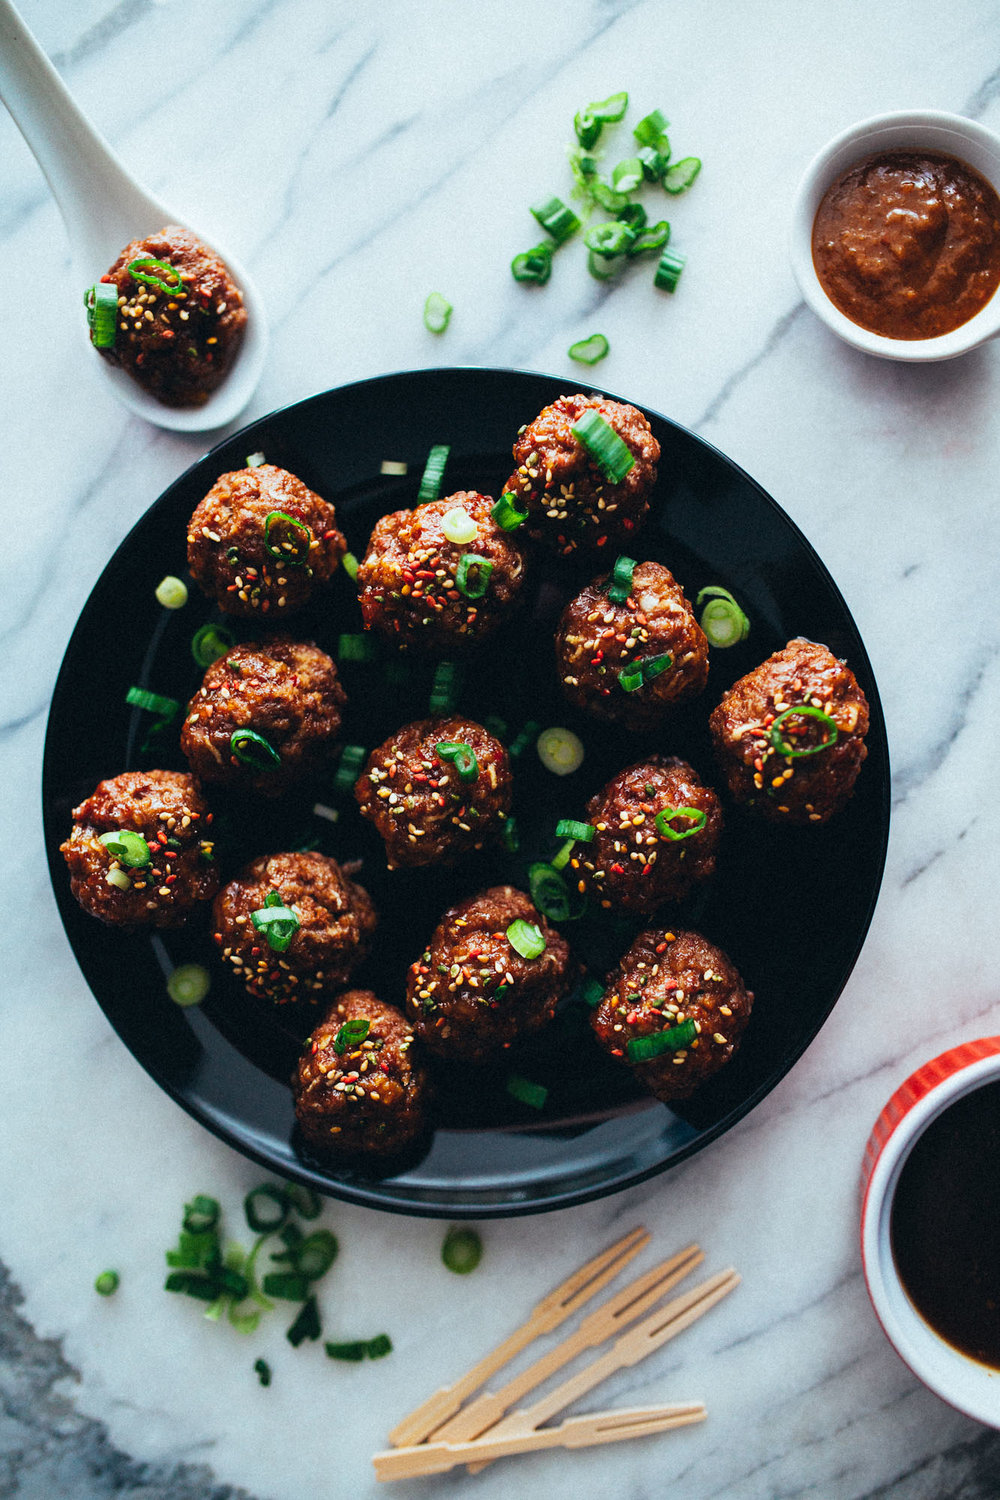 Earthy Spicy Tingly Meatballs